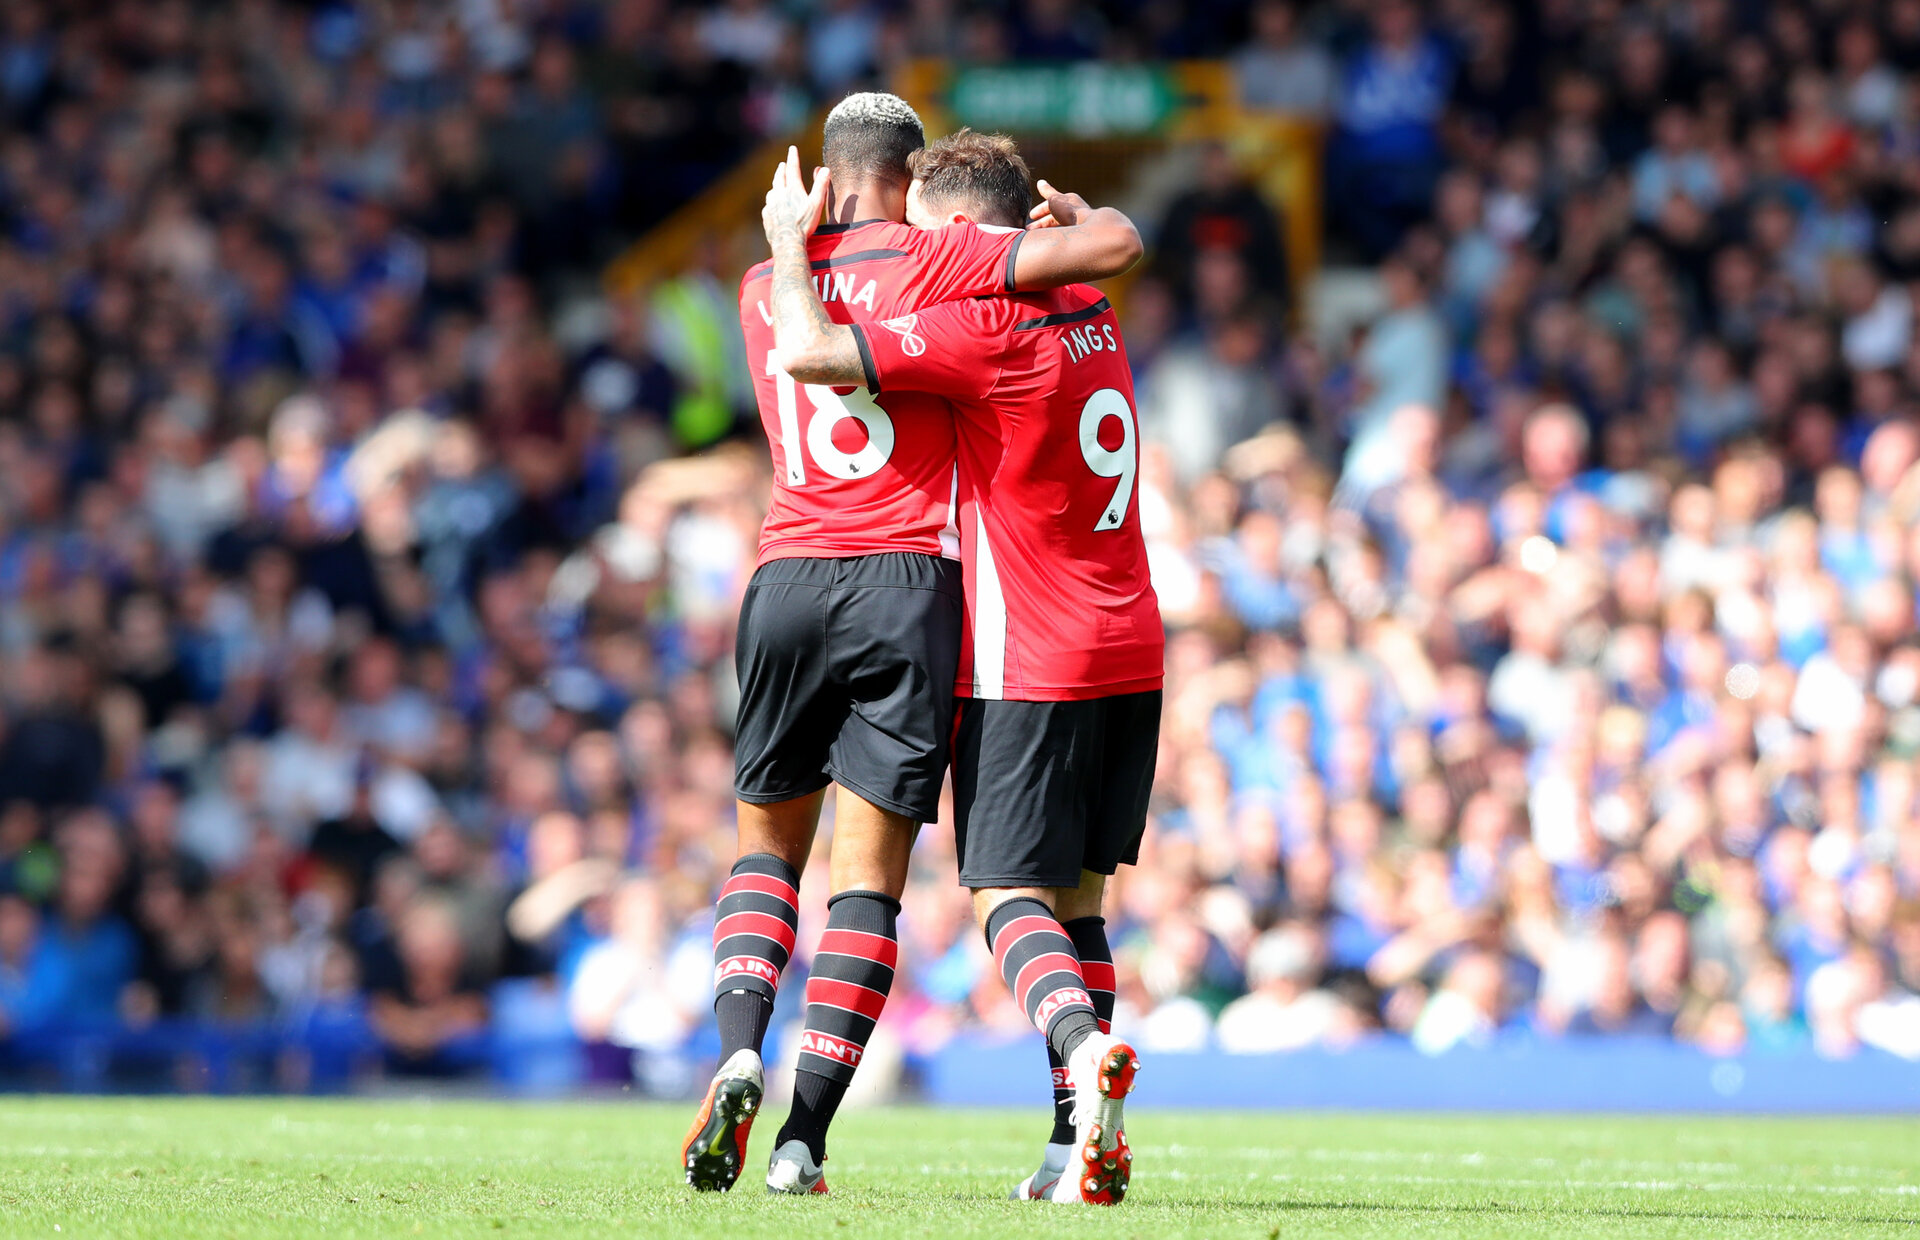 LIVERPOOL, ENGLAND - AUGUST 18: Mario Lemina(L) and Danny Ings of Southampton during the Premier League match between Everton FC and Southampton FC at Goodison Park on August 18, 2018 in Liverpool, United Kingdom. (Photo by Matt Watson/Southampton FC via Getty Images)